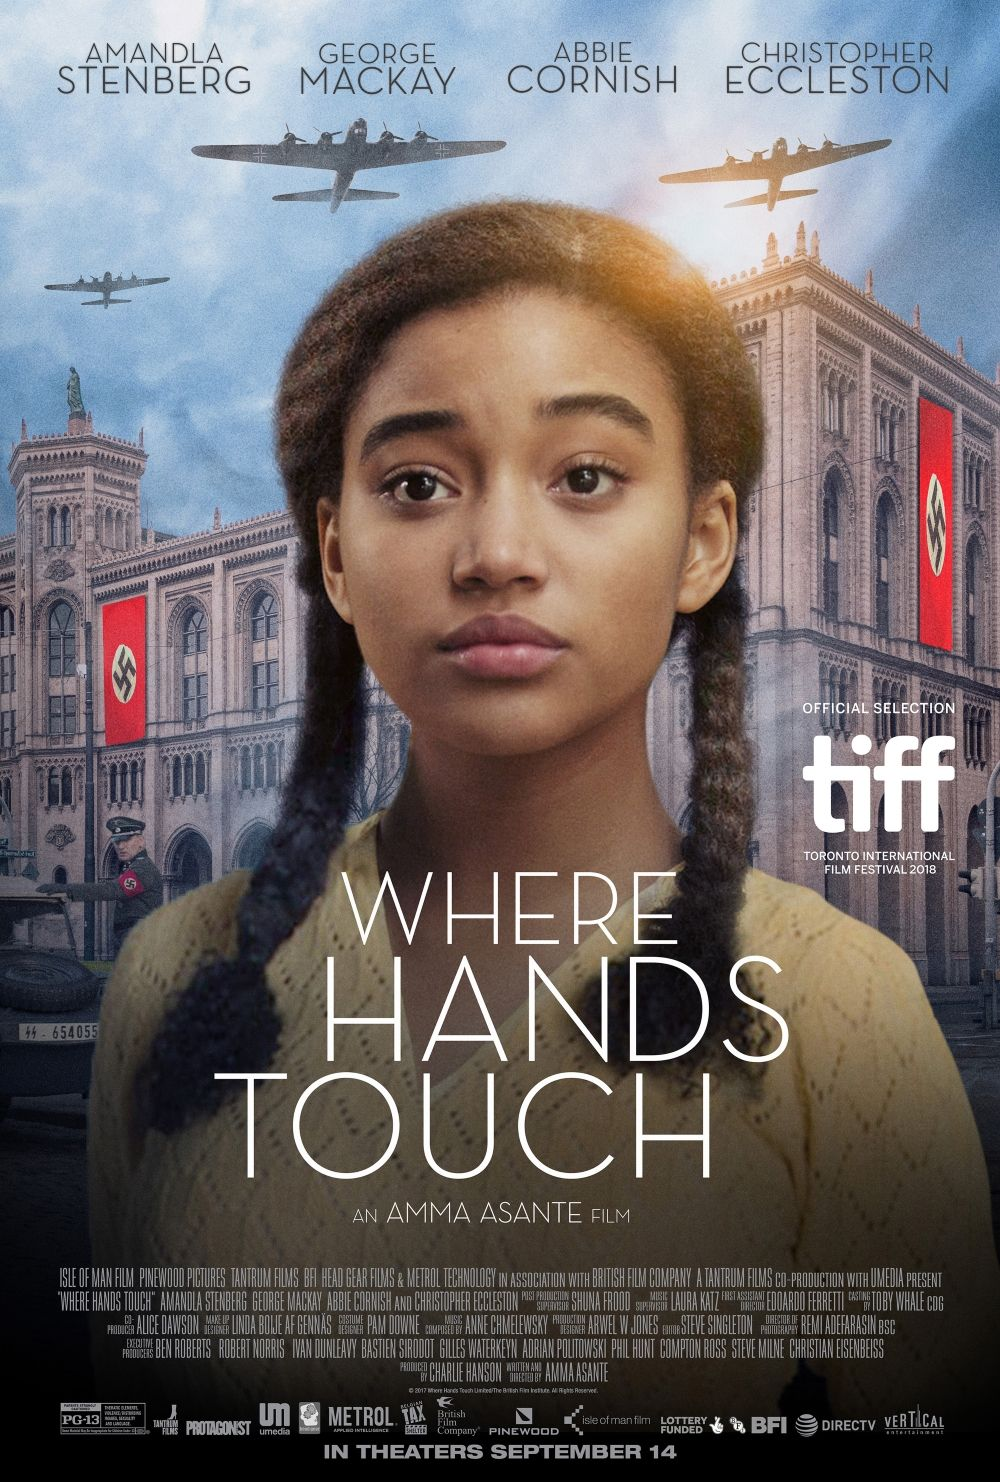 Where Hands Touch Movie Poster Https Teaser Trailer Com Movie Where Hands Touch Written And Dir Full Movies Online Free Free Movies Online Movies Online